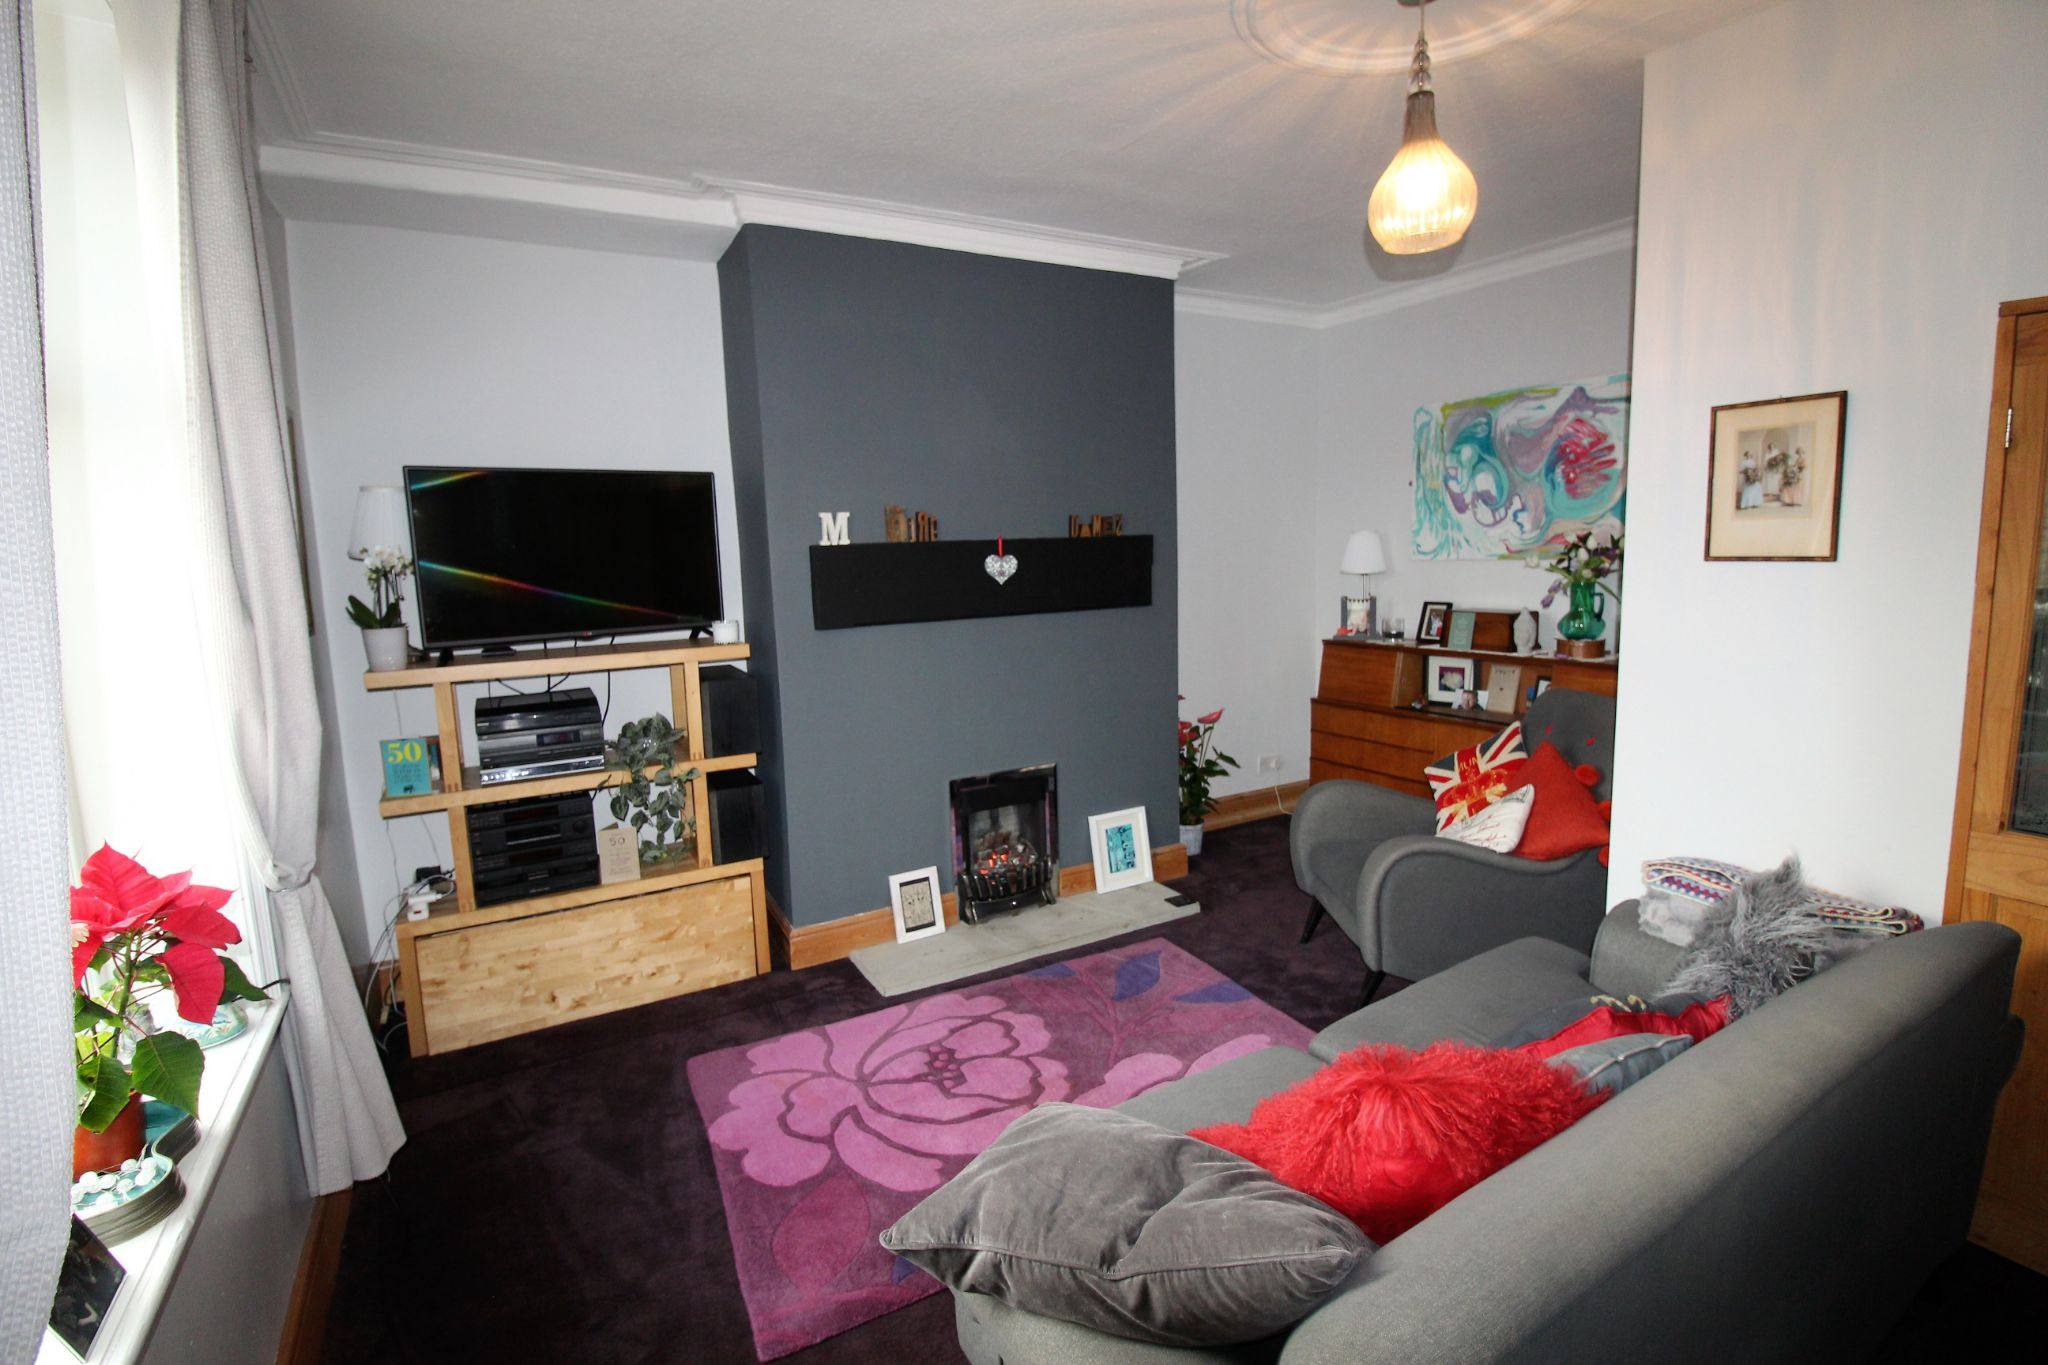 2 bedroom mid terraced house SSTC in Halifax - Lounge - picture 2